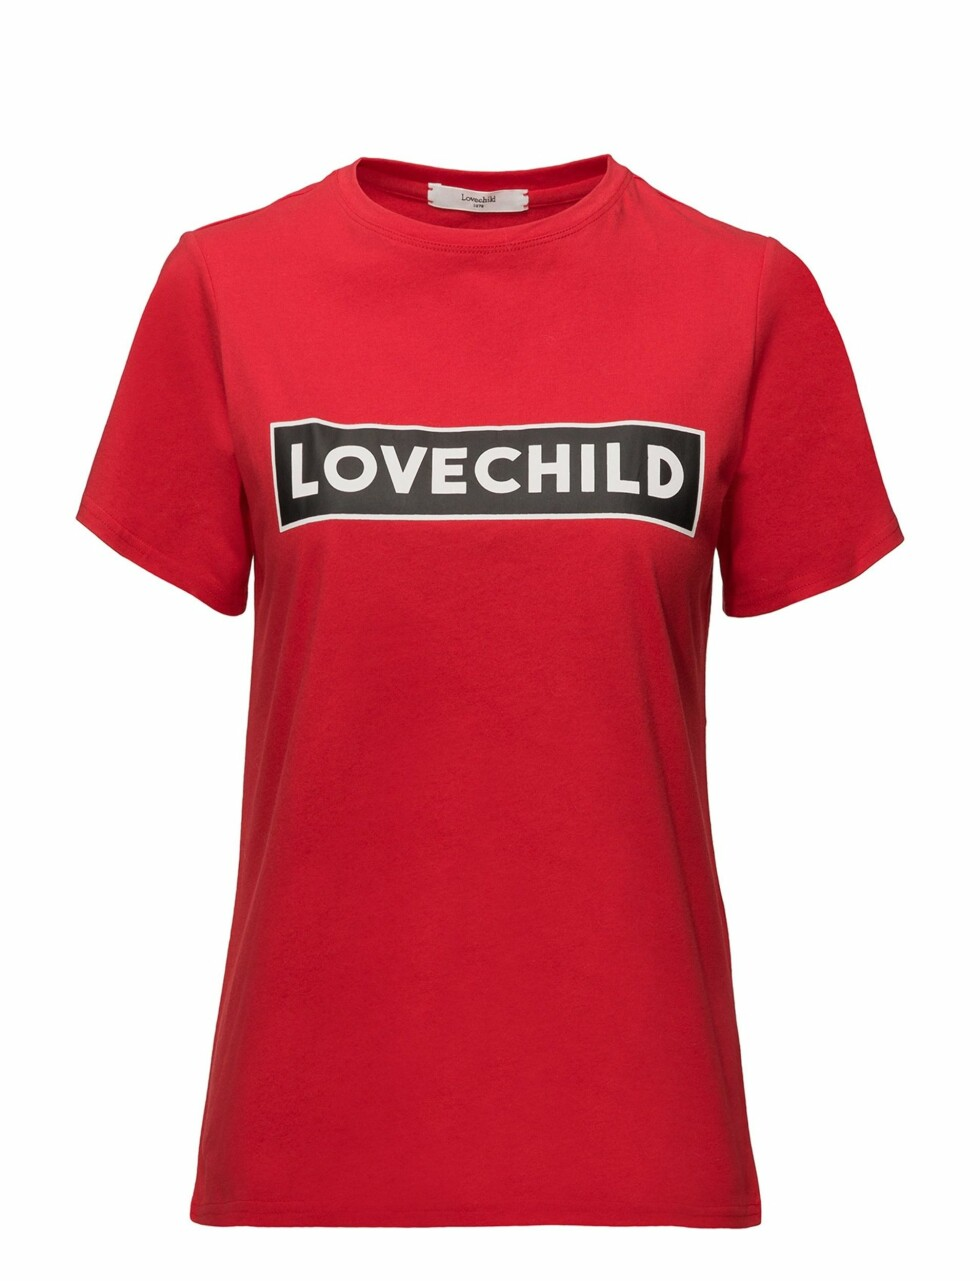 <strong>T-skjorte fra Lovechild 1979 via Boozt |695,-|https:</strong>//www.boozt.com/no/no/lovechild-1979/alyssa-t-shirt_16898798/16898799?navId=67362&sNavId=67386&group=listing&position=1000000